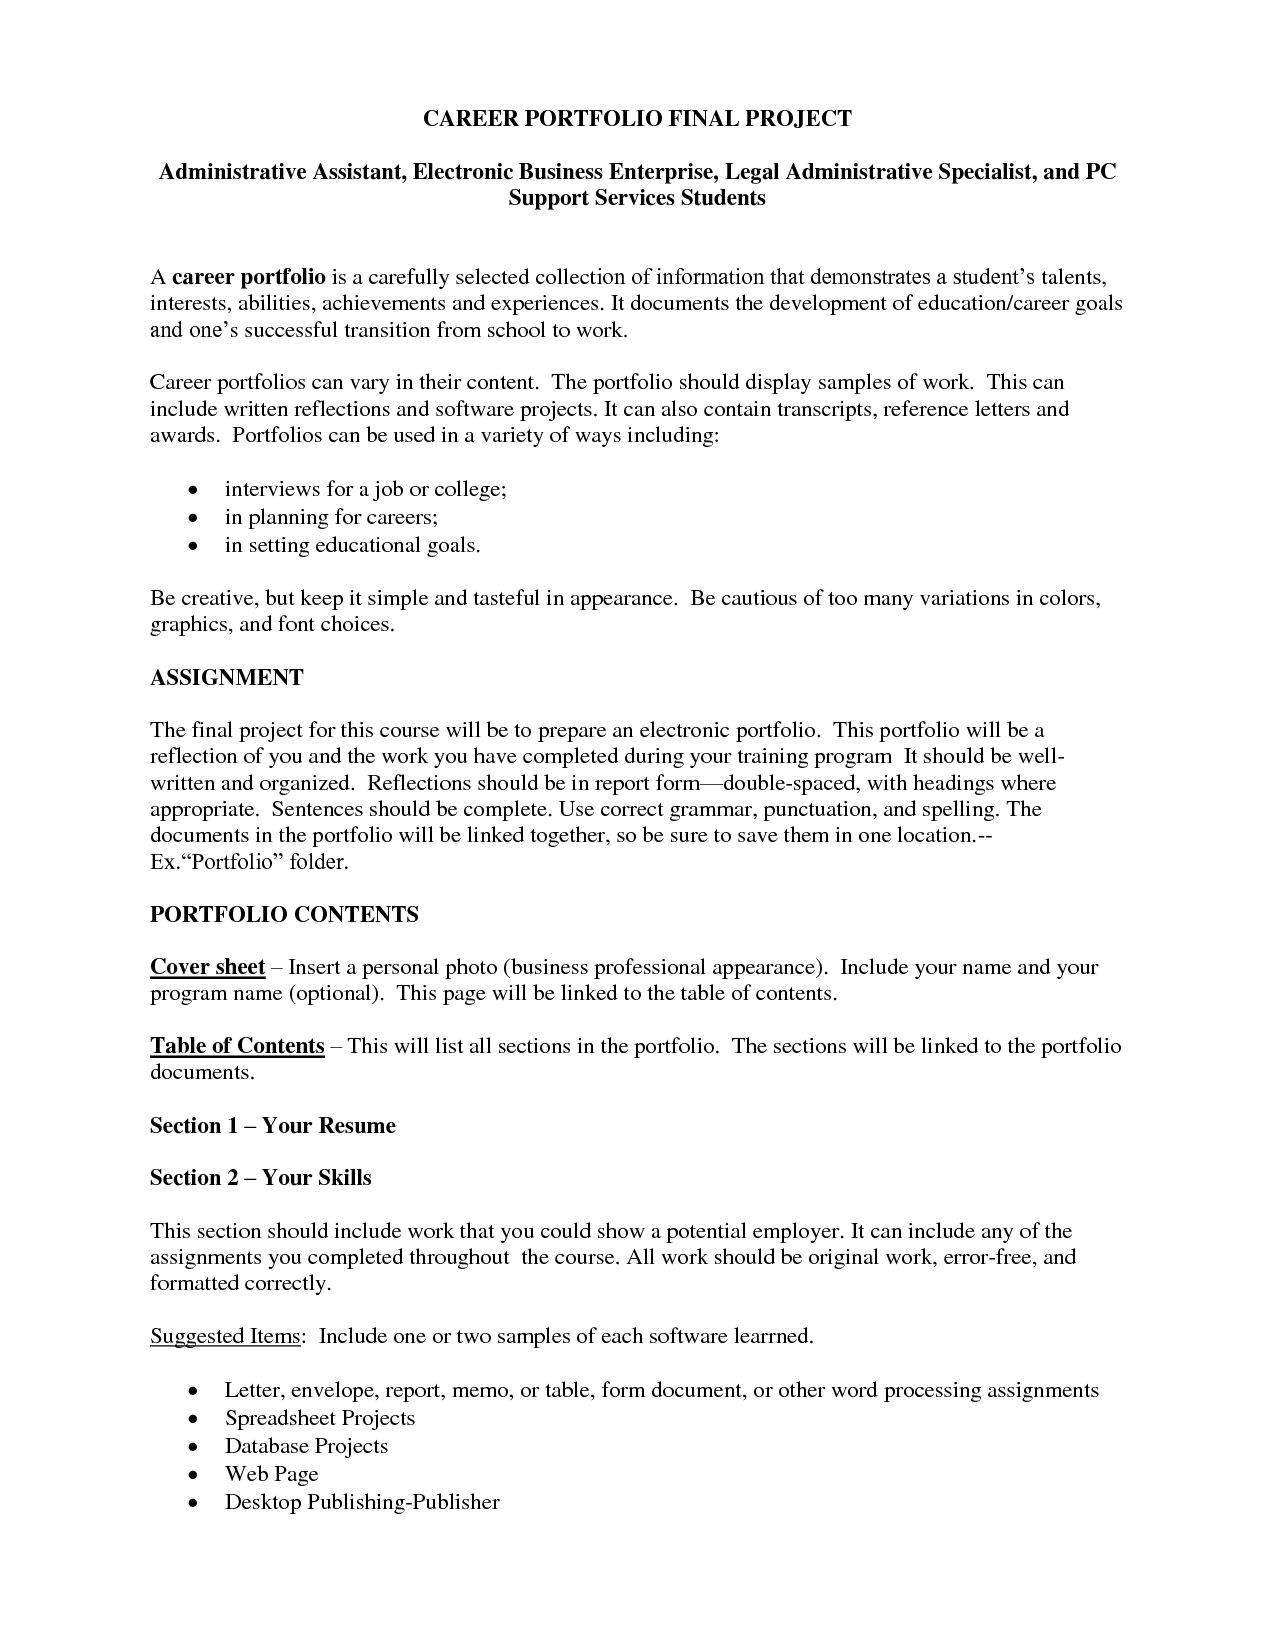 Resume Templates Word Administrative Assistant